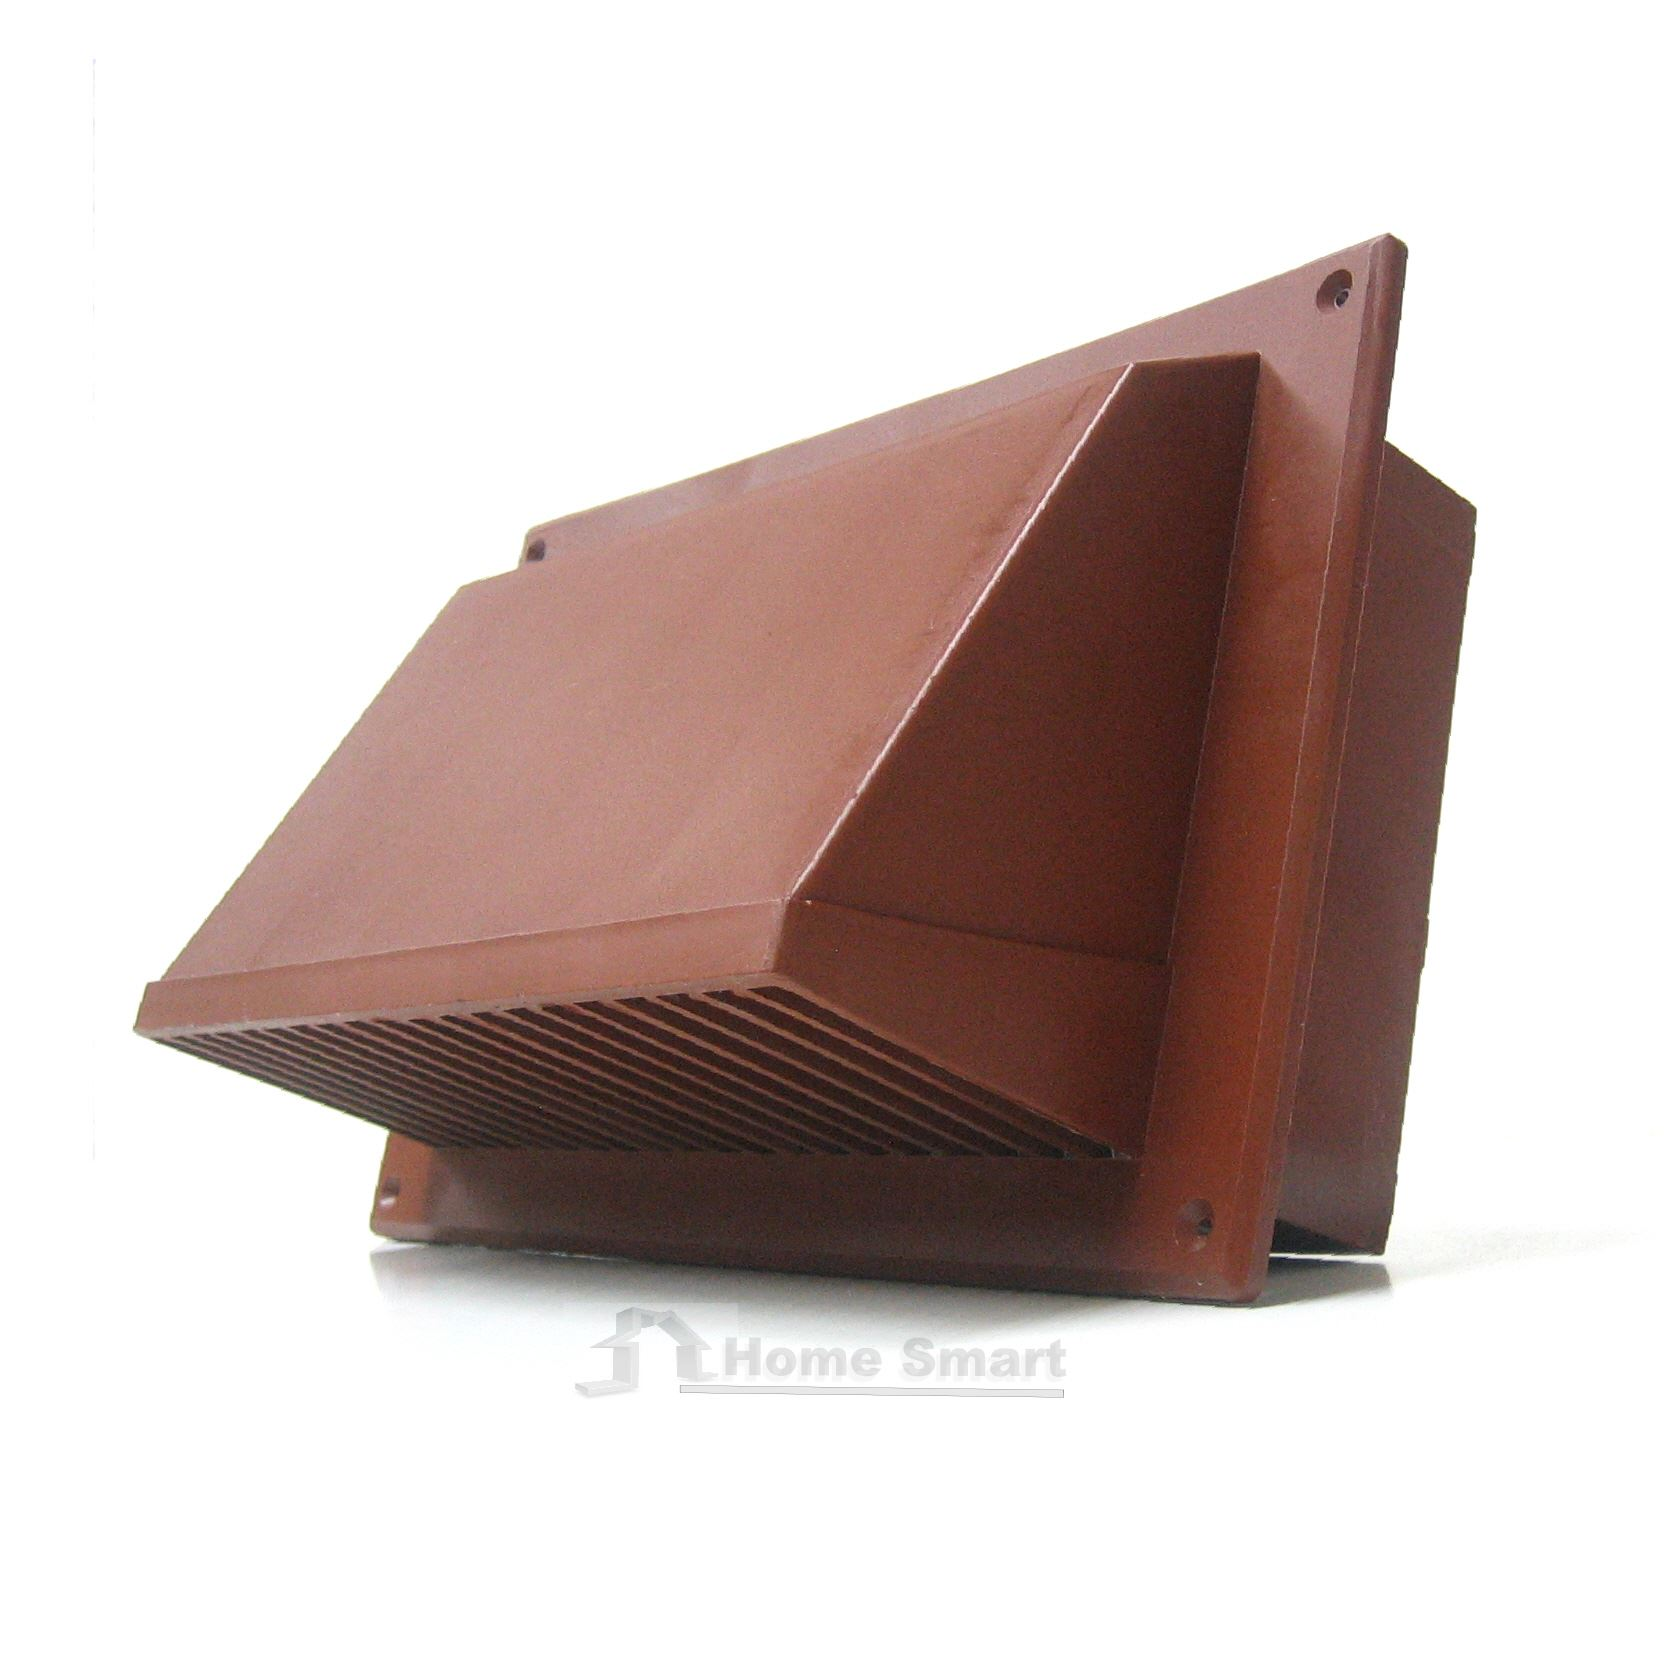 Quot brown replacement cowl cover for air bricks